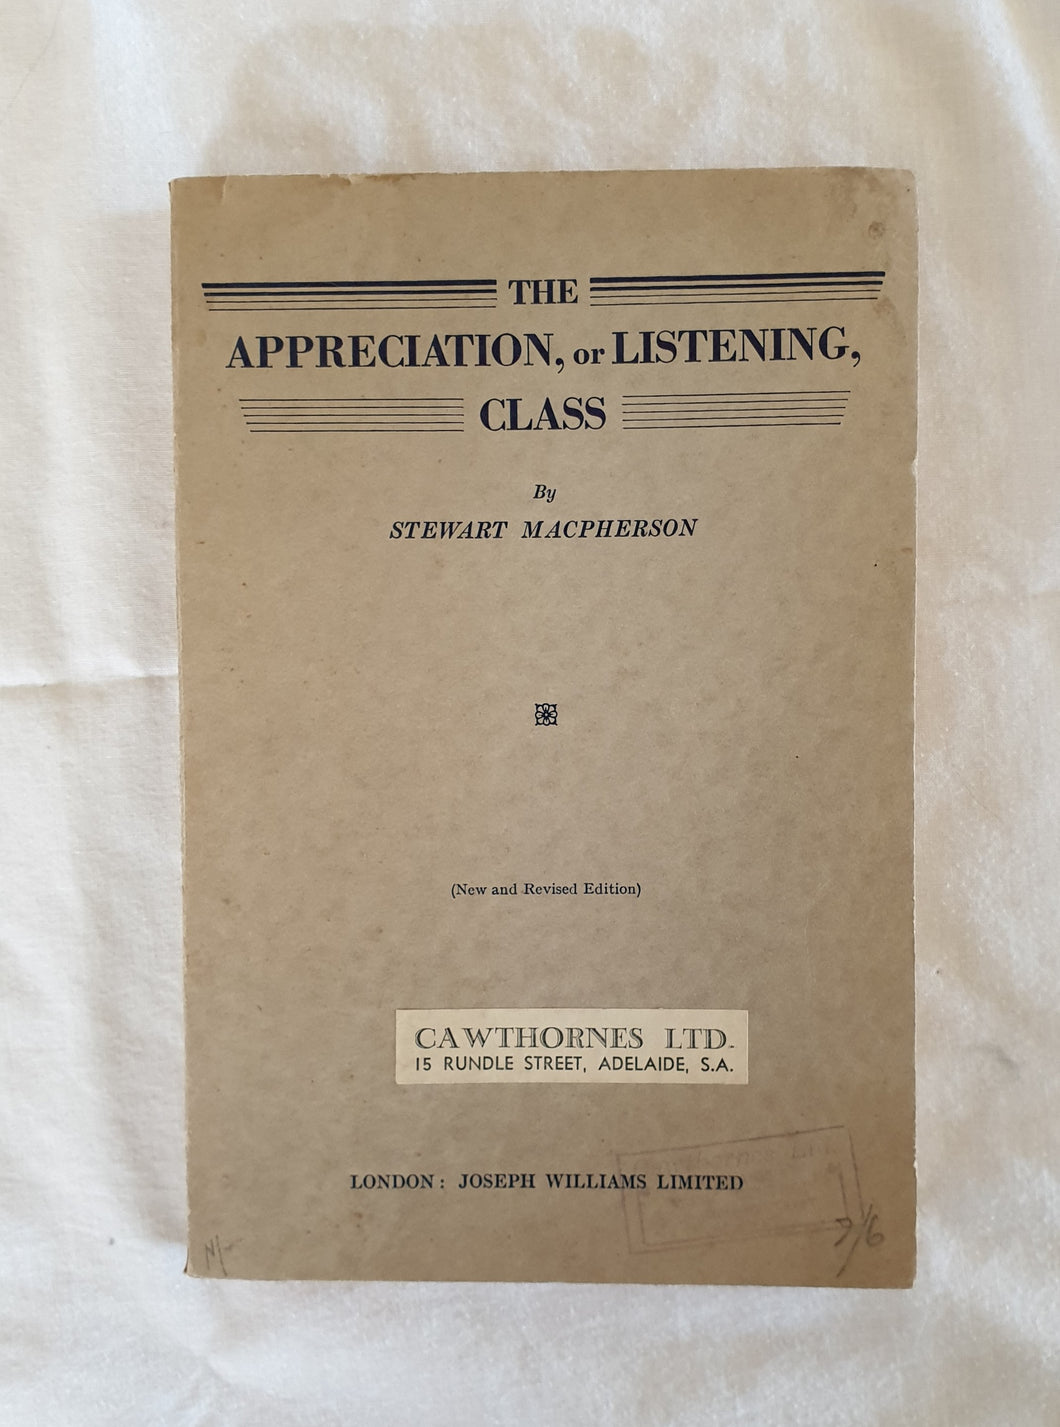 The Appreciation, or Listening, Class by Stewart MacPherson